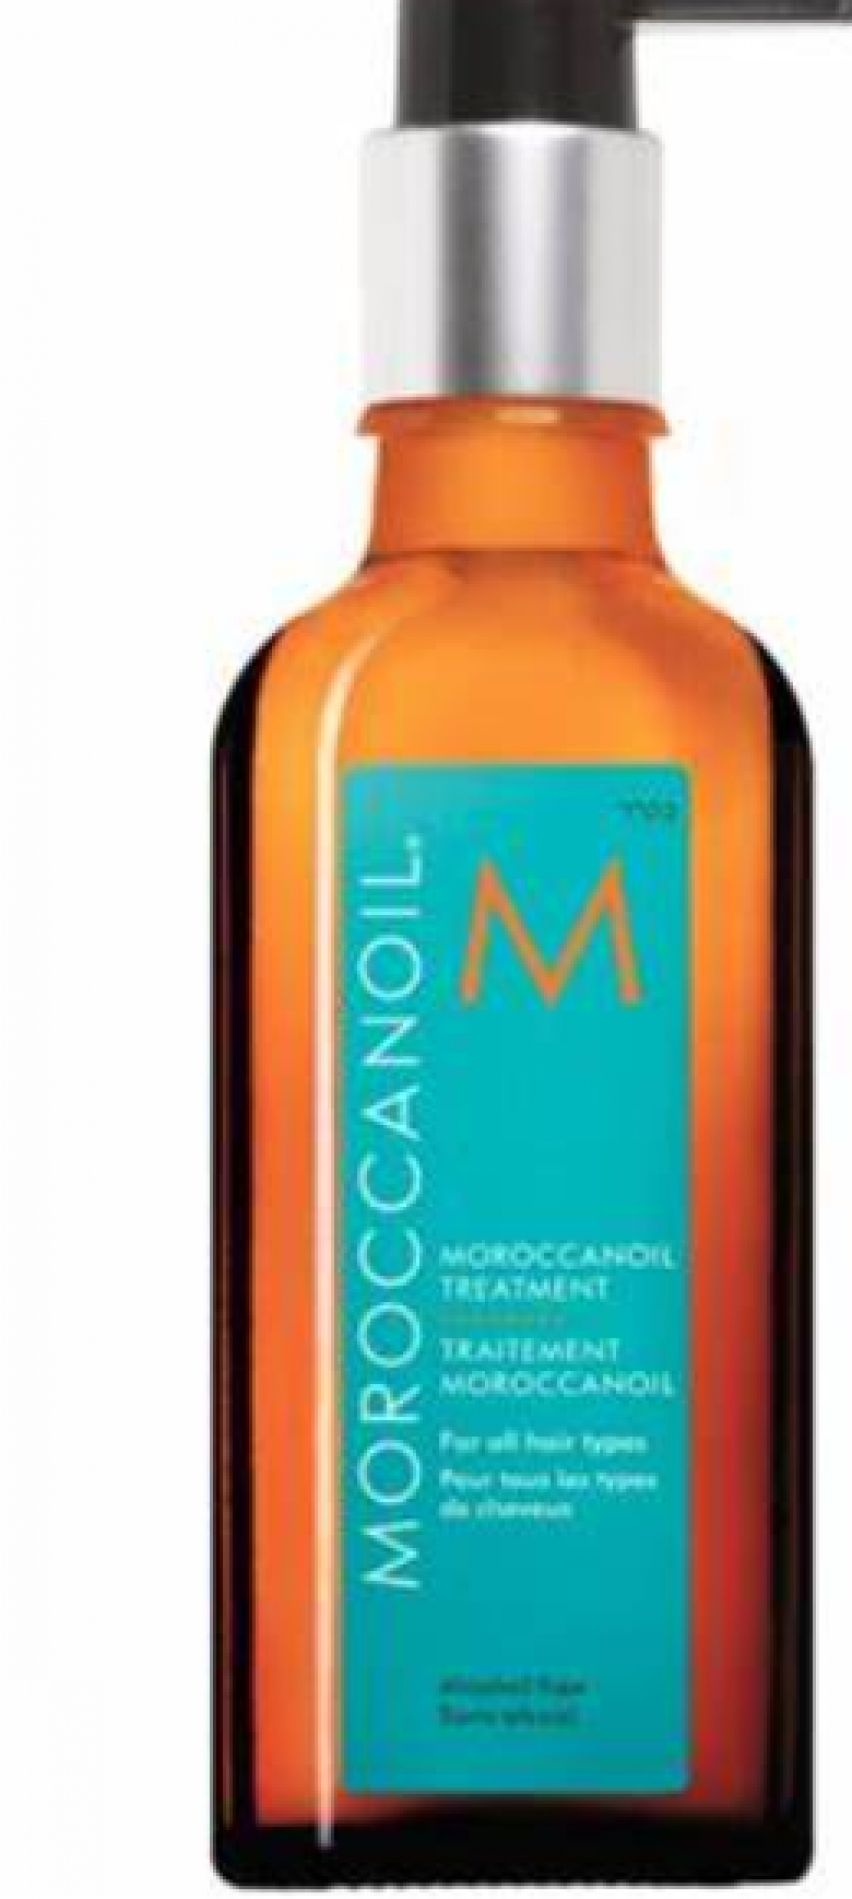 LOVE MY HAIR - huile moroccanoil